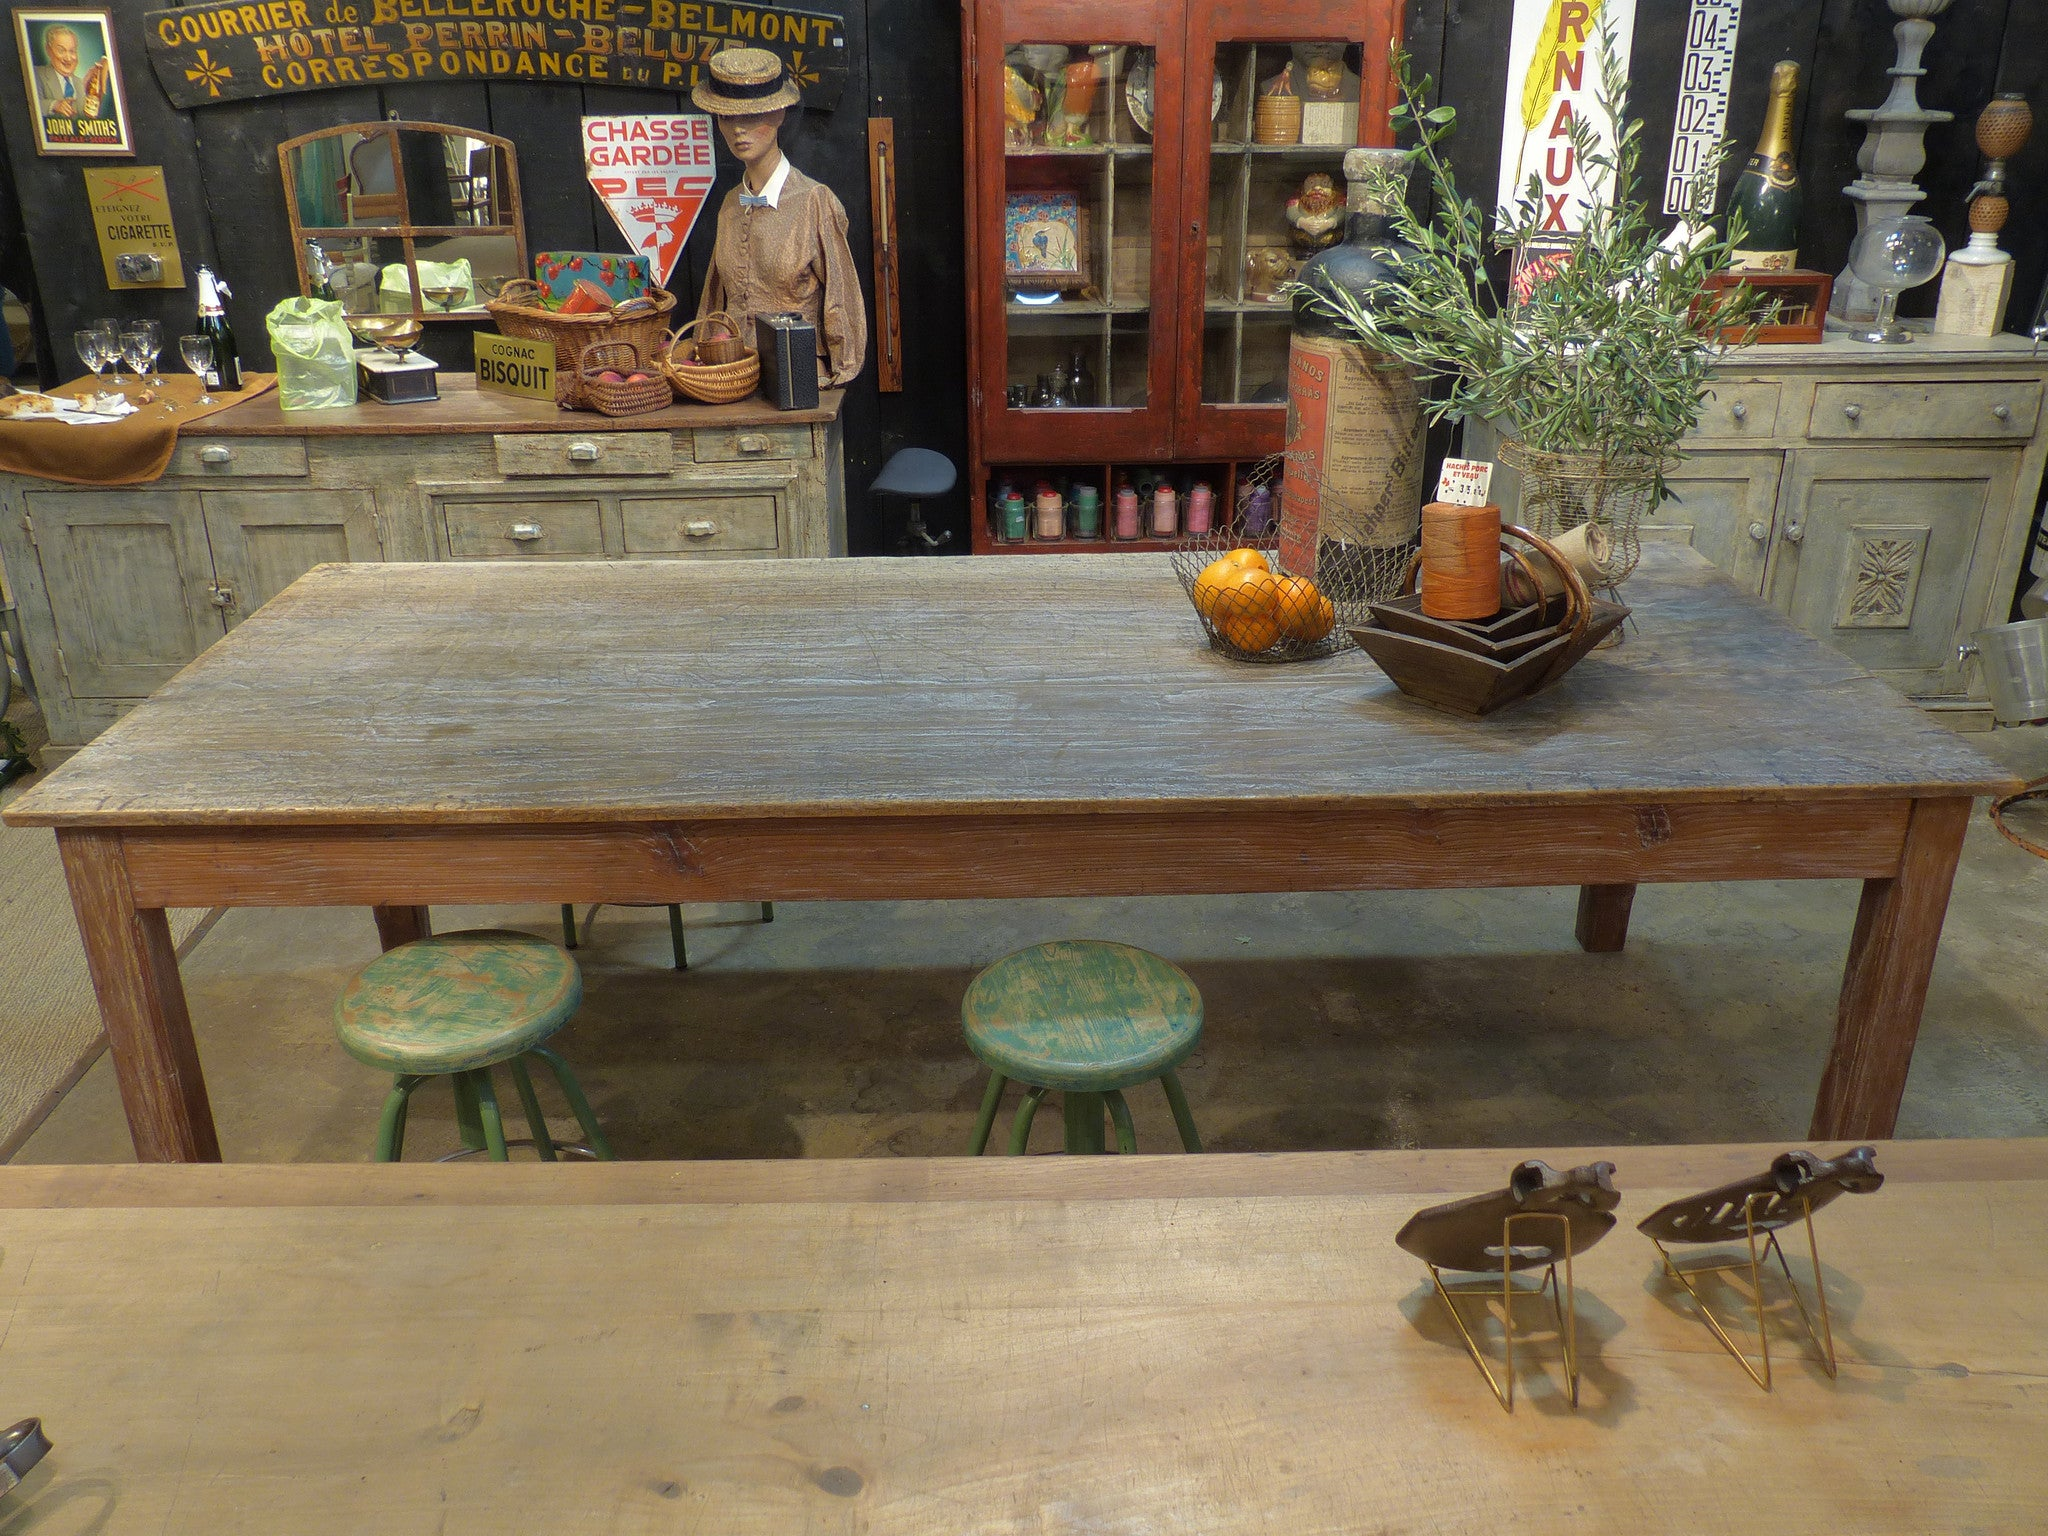 Large 19th century rectangular rustic work table with original patina